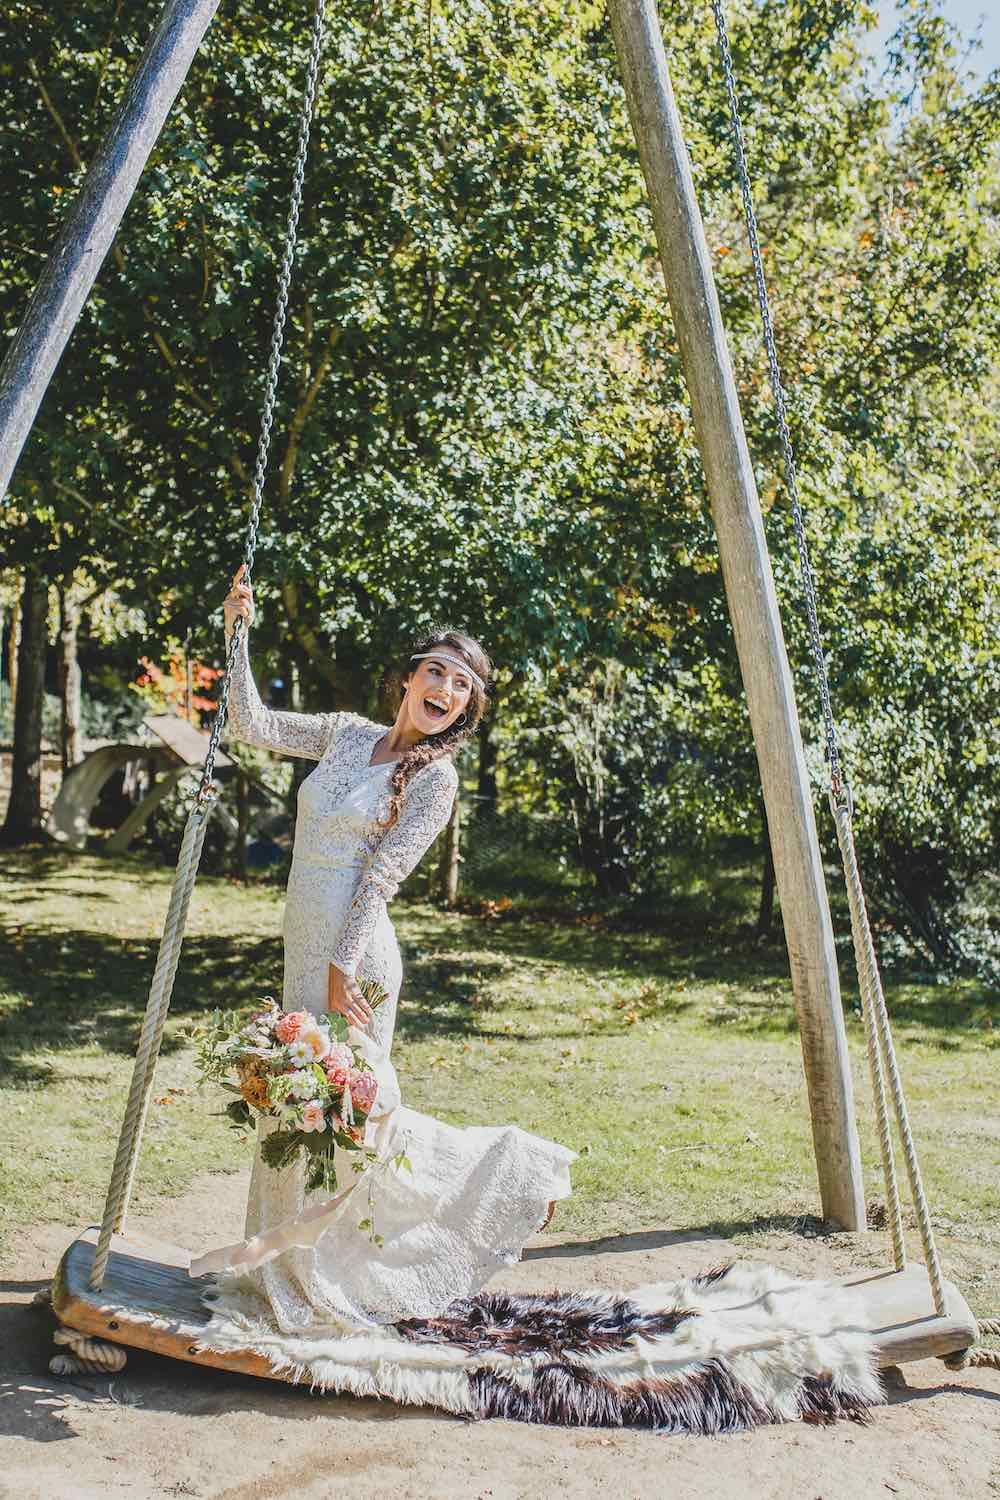 Bride on giant woodland swing with flowers